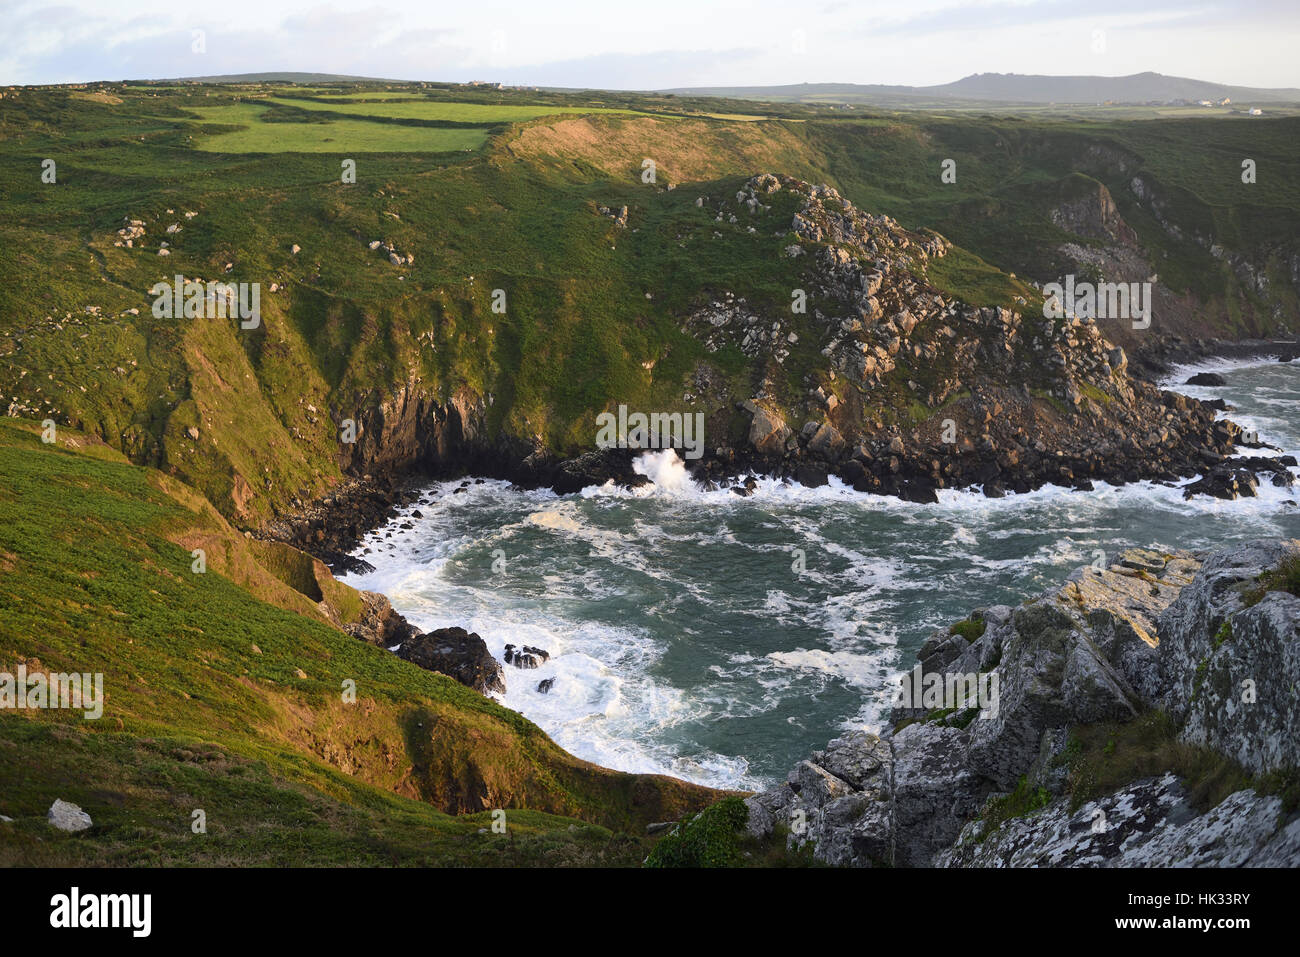 Looking over Pendour Cove from Zennor Head, Cornwall, showing cliffs and sea with spume from wind - Stock Image